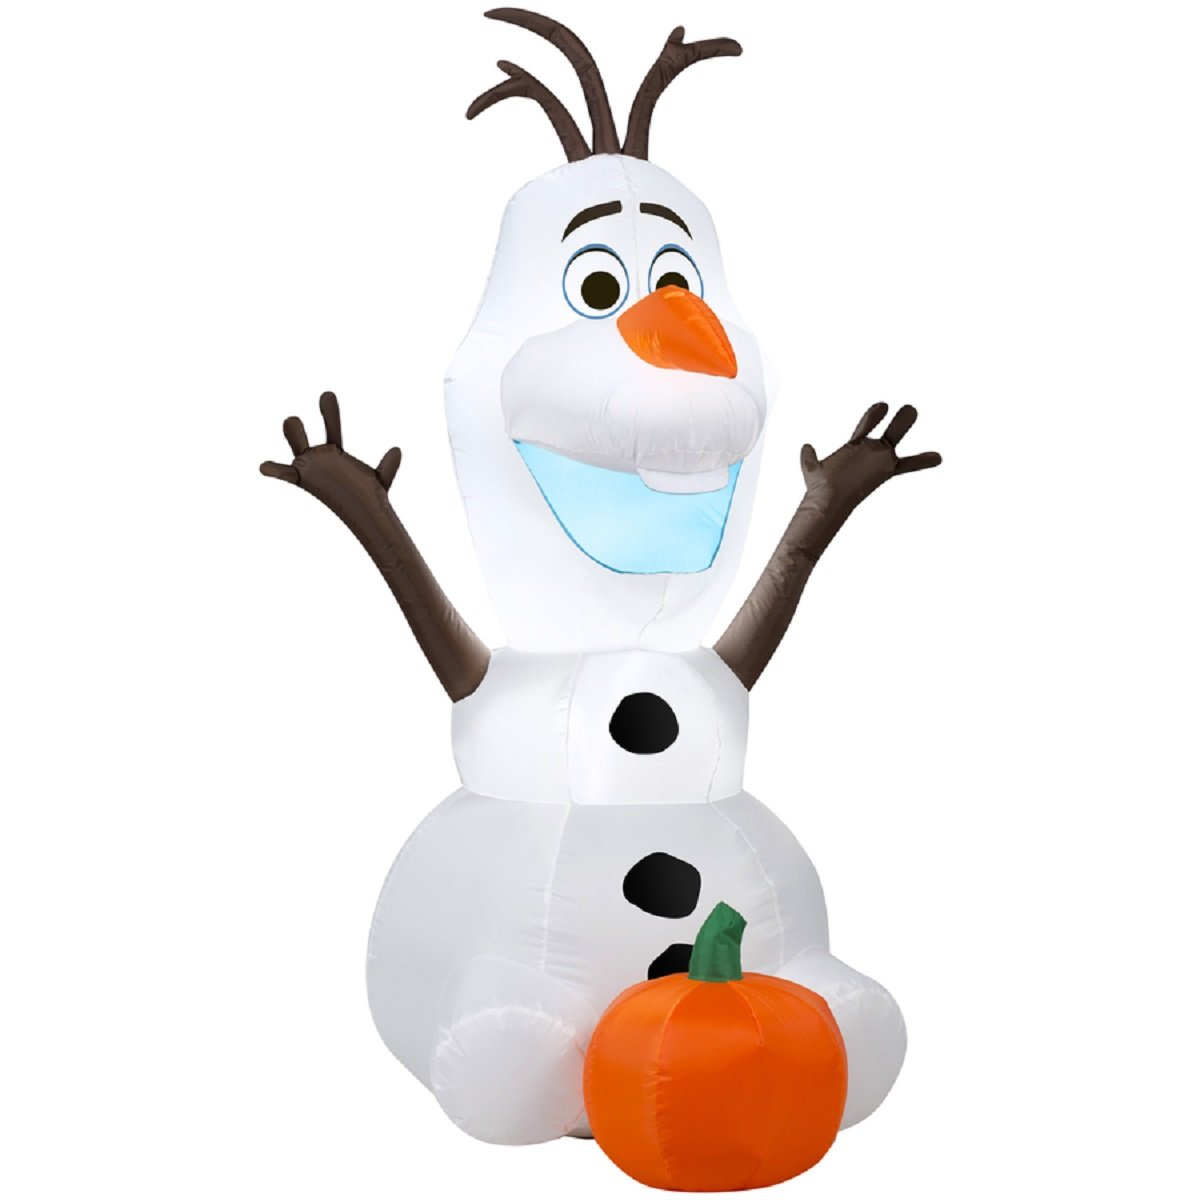 Outdoor inflatable halloween decorations - Amazon Com Gemmy Airblown Inflatable Disney S Olaf With Pumpkin Thanksgiving Halloween Yard Decoration Props 3 5 Foot Tall Patio Lawn Garden